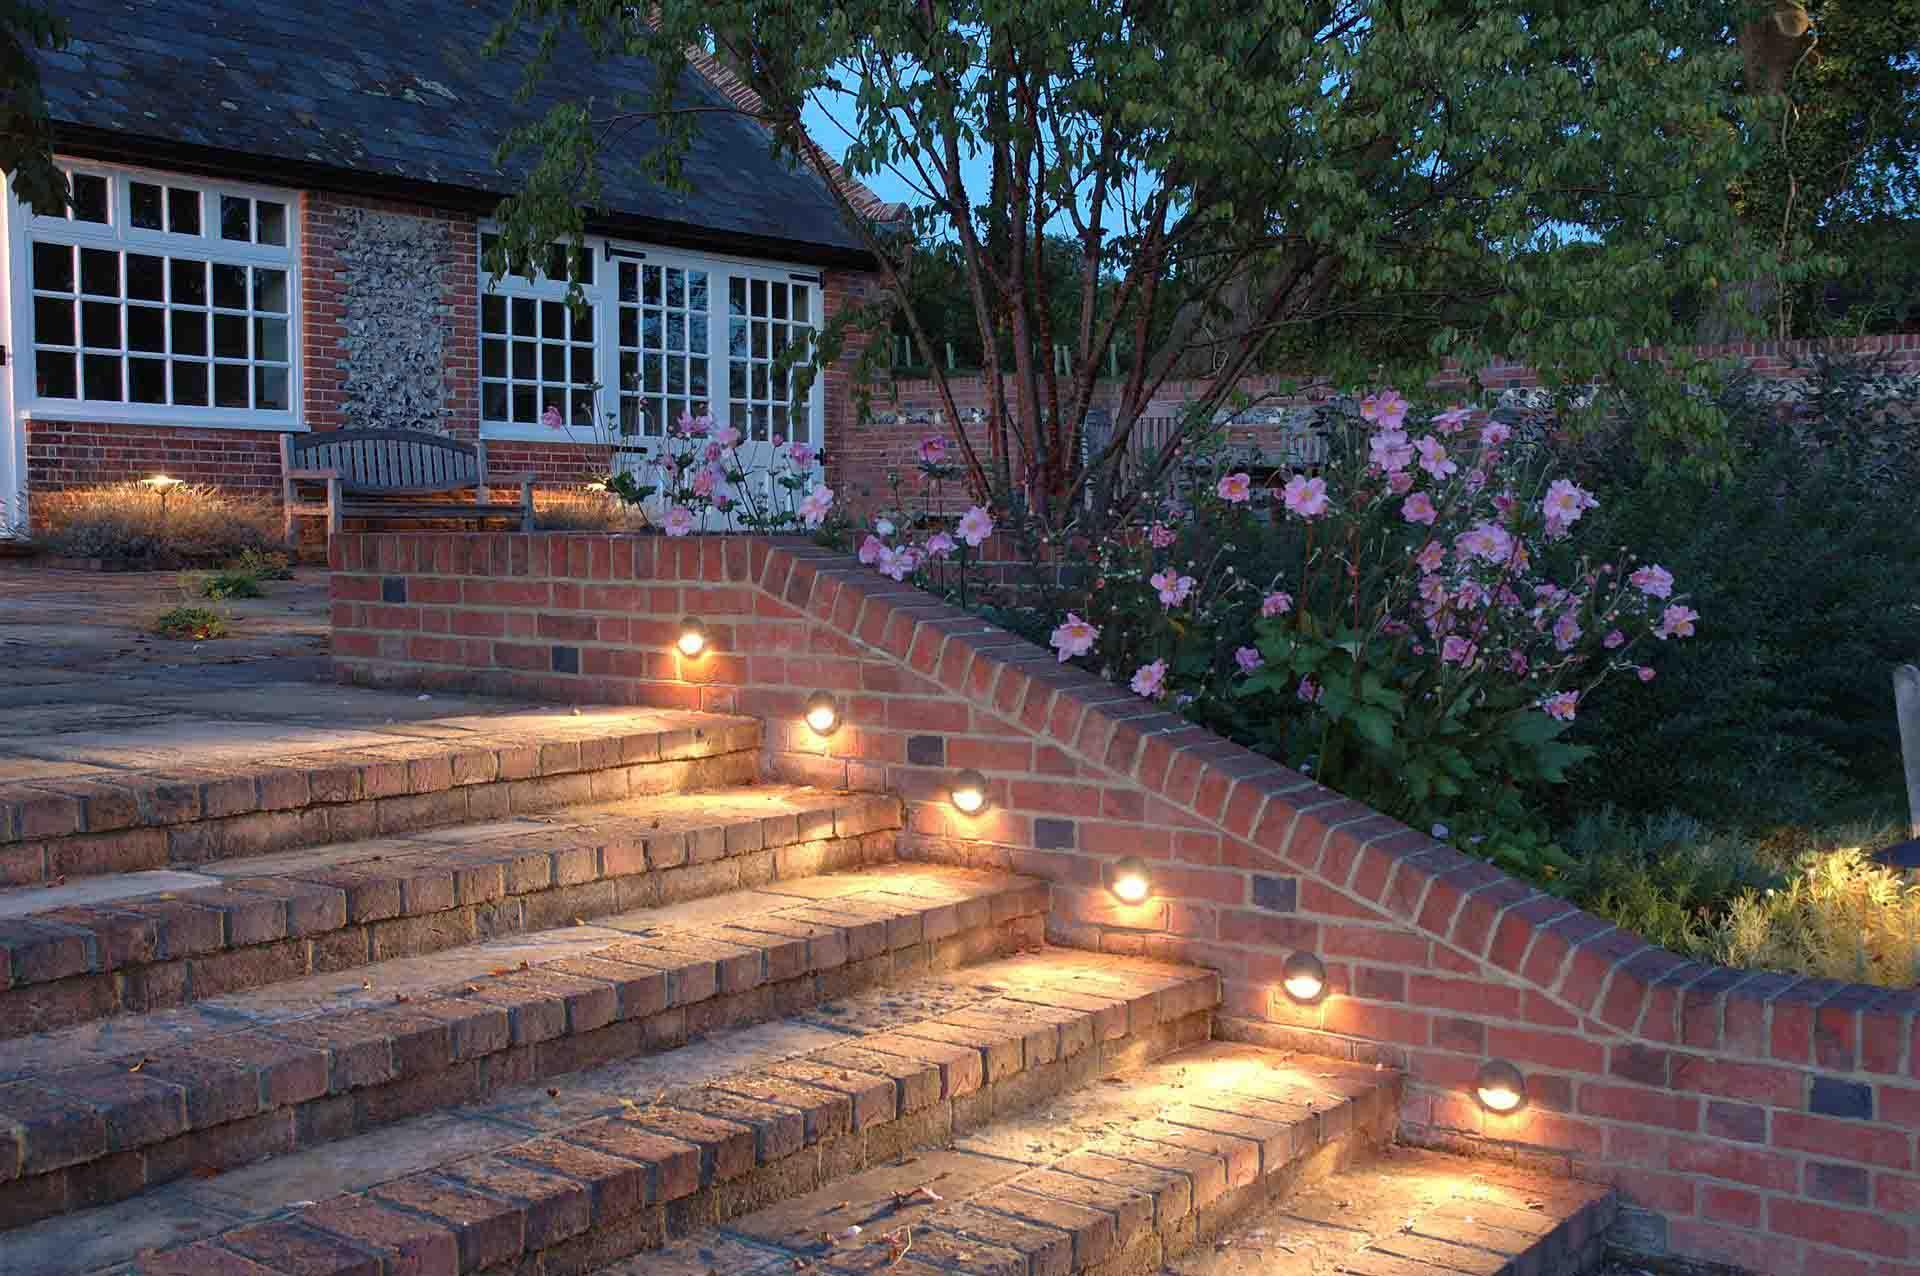 outdoor stair lighting lounge. Fine Stair Outdoor Stair Lighting Lounge Little Safer With Stairway  Can Lounge X Throughout Outdoor Stair Lighting Lounge E